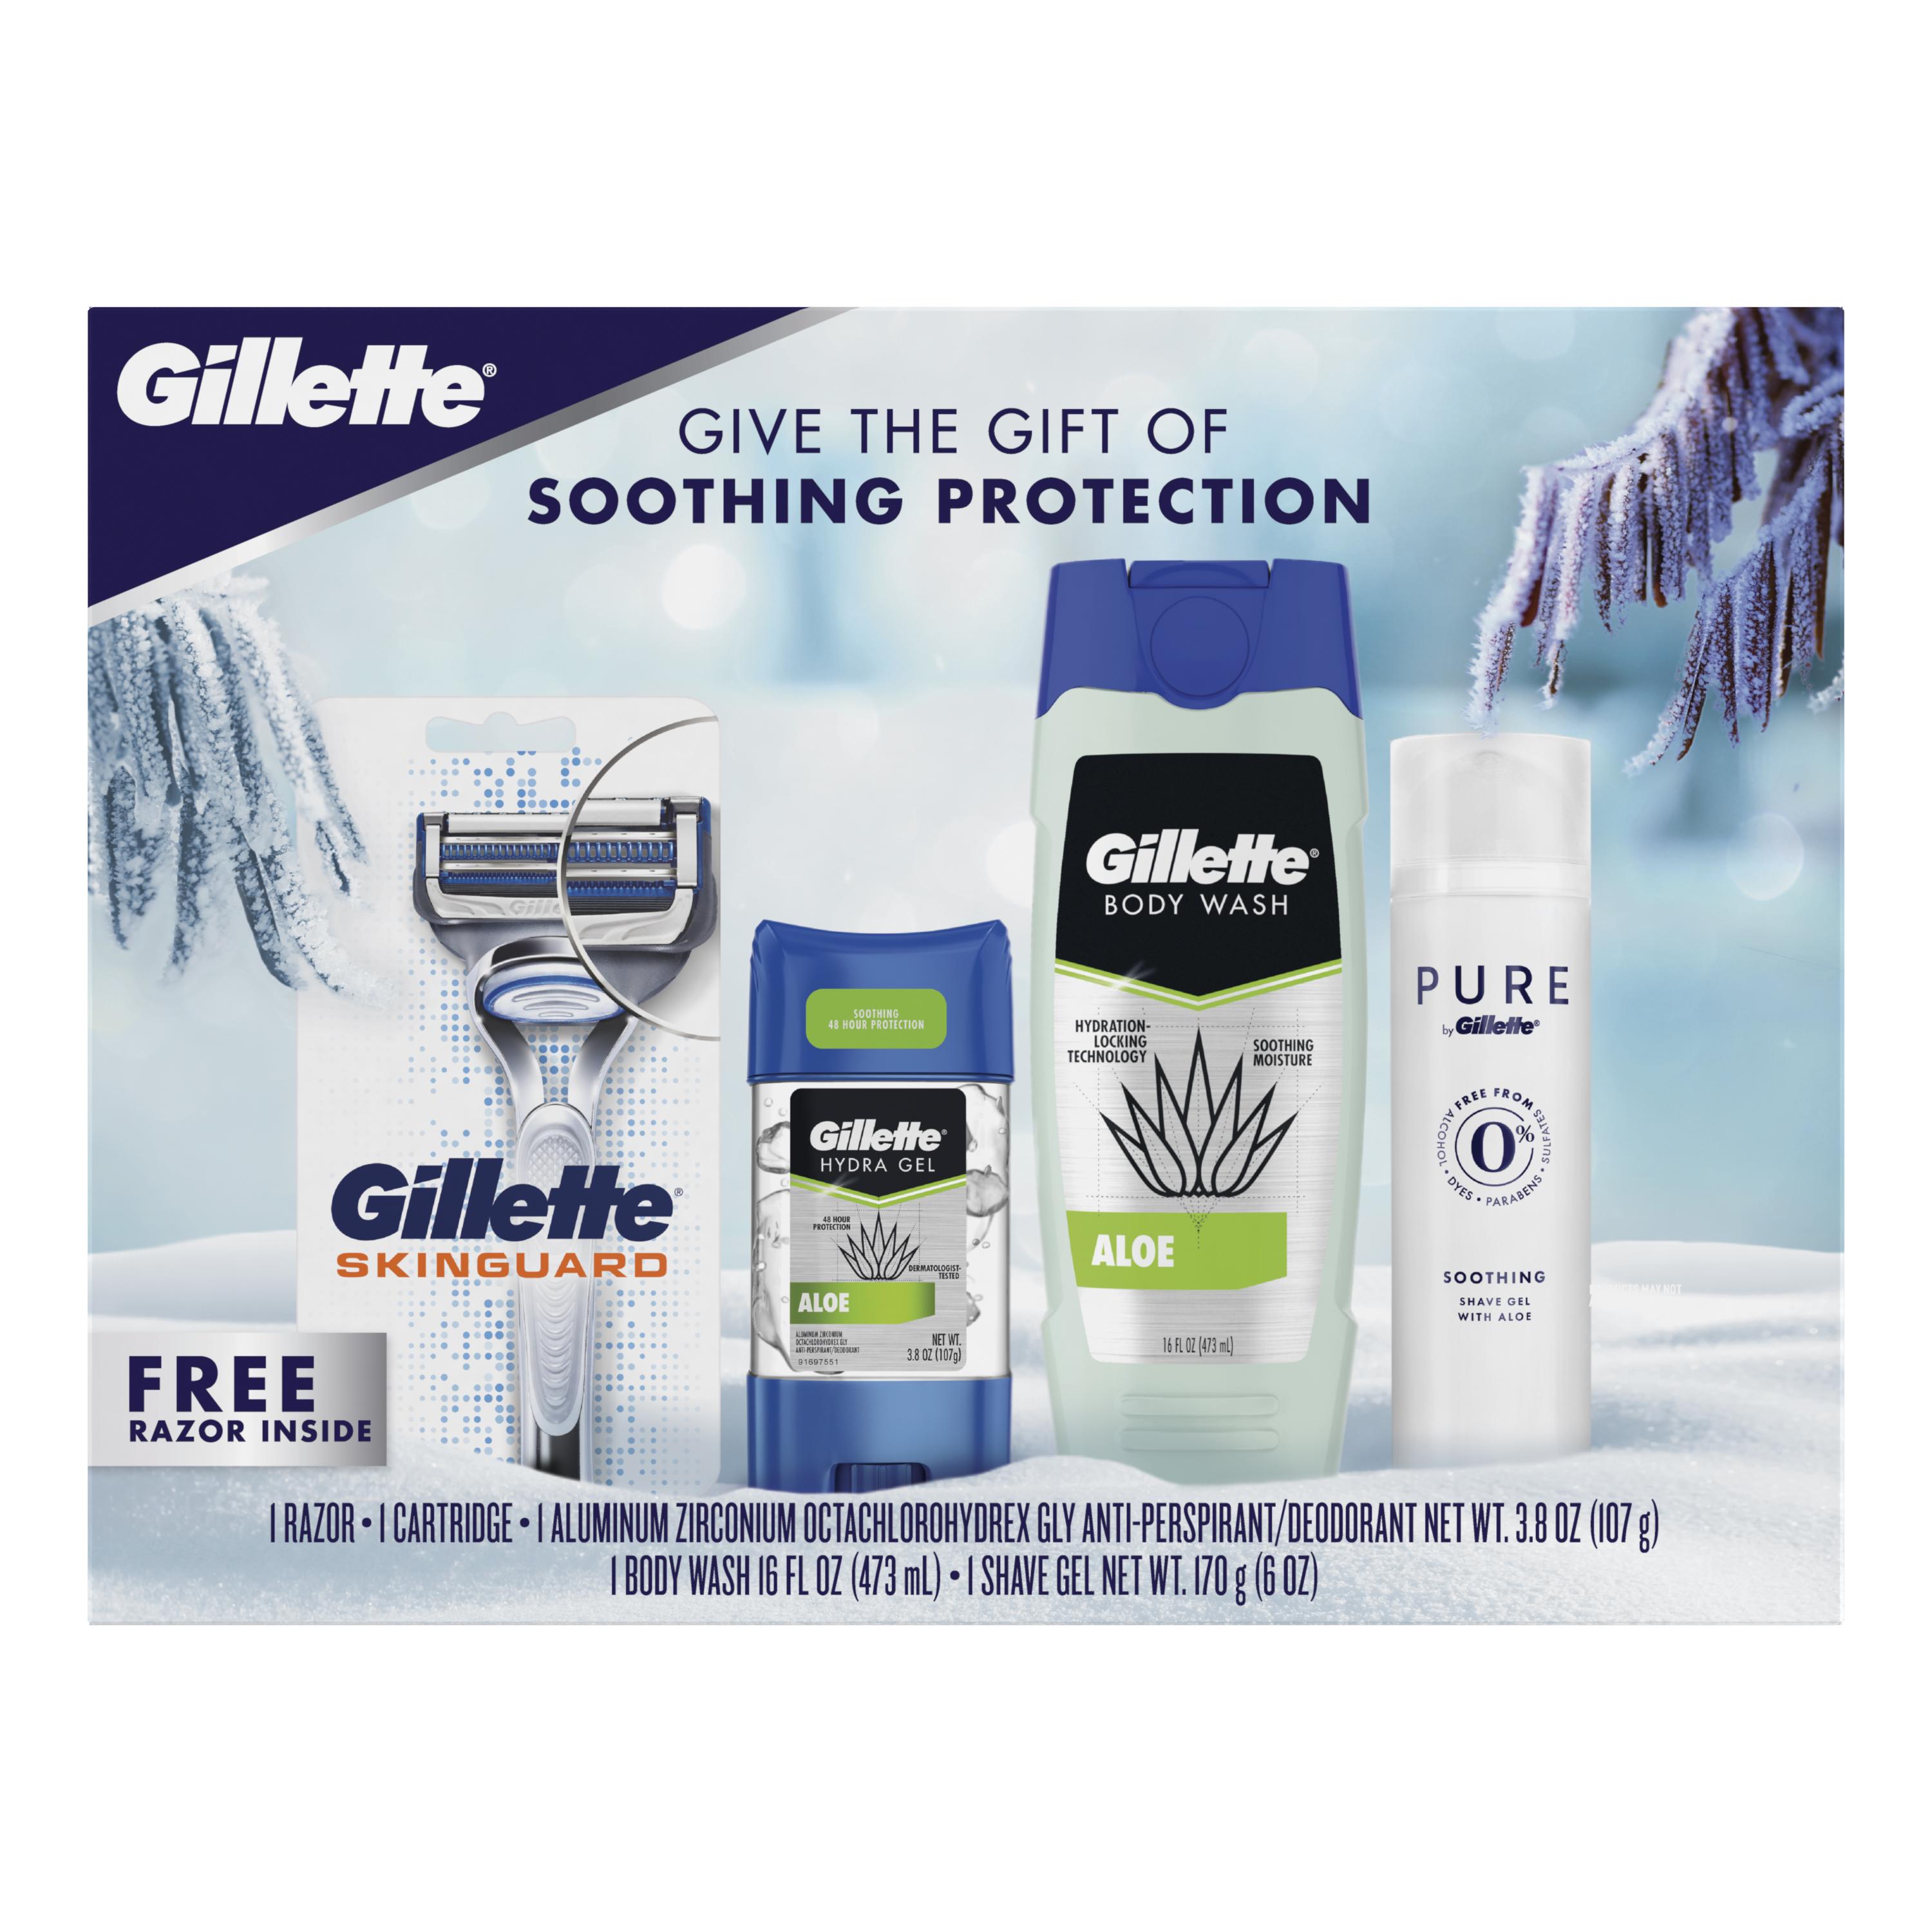 Gillette Gift Pack Soothing Gift Pack, Razor, Deodorant, Body Wash, and Soothing Shave Gel